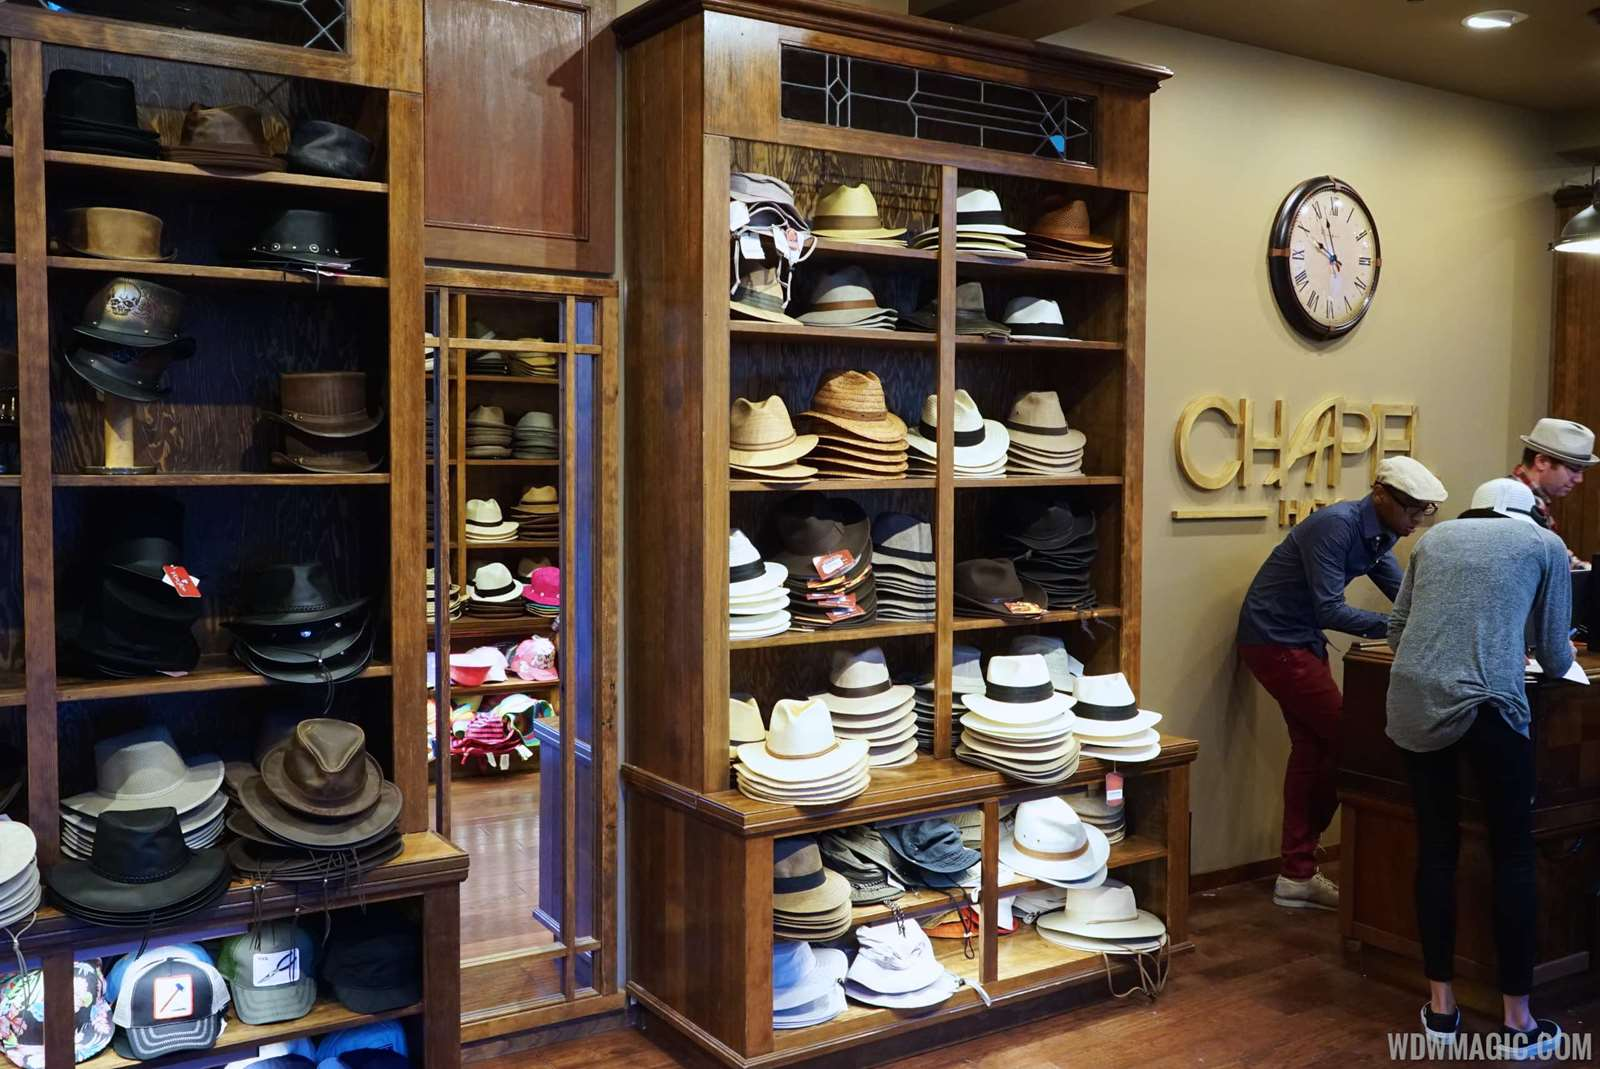 9ad6f2eabd35e PHOTOS - Inside the new Chapel Hats store at Disney Springs